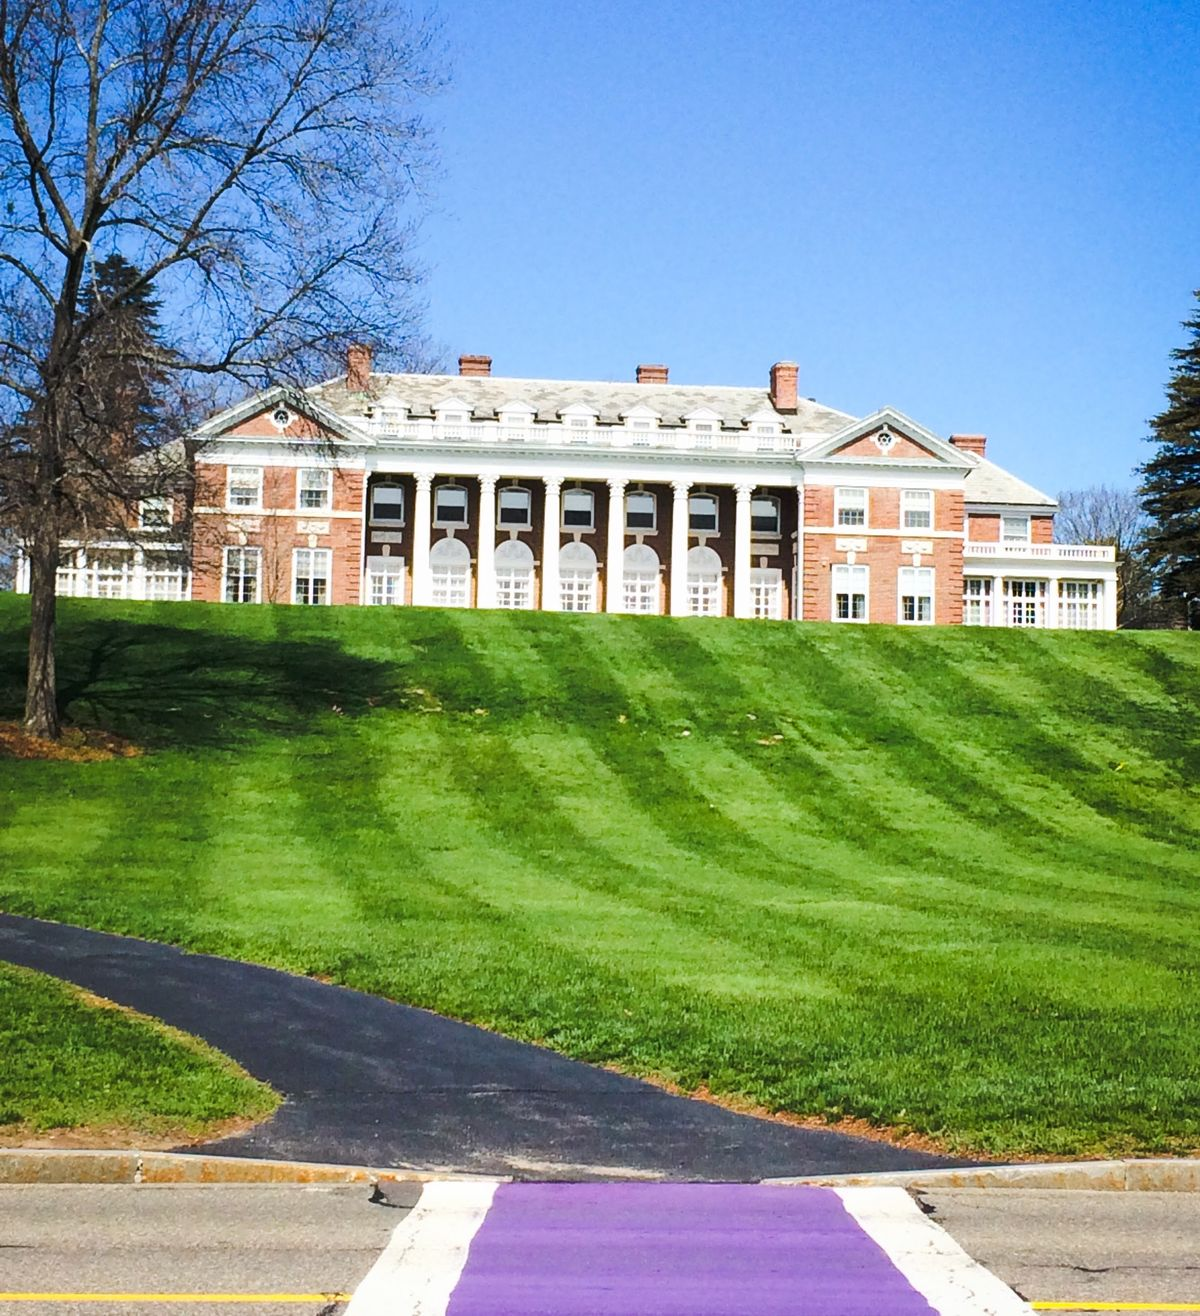 An A To Z List of Life At Stonehill